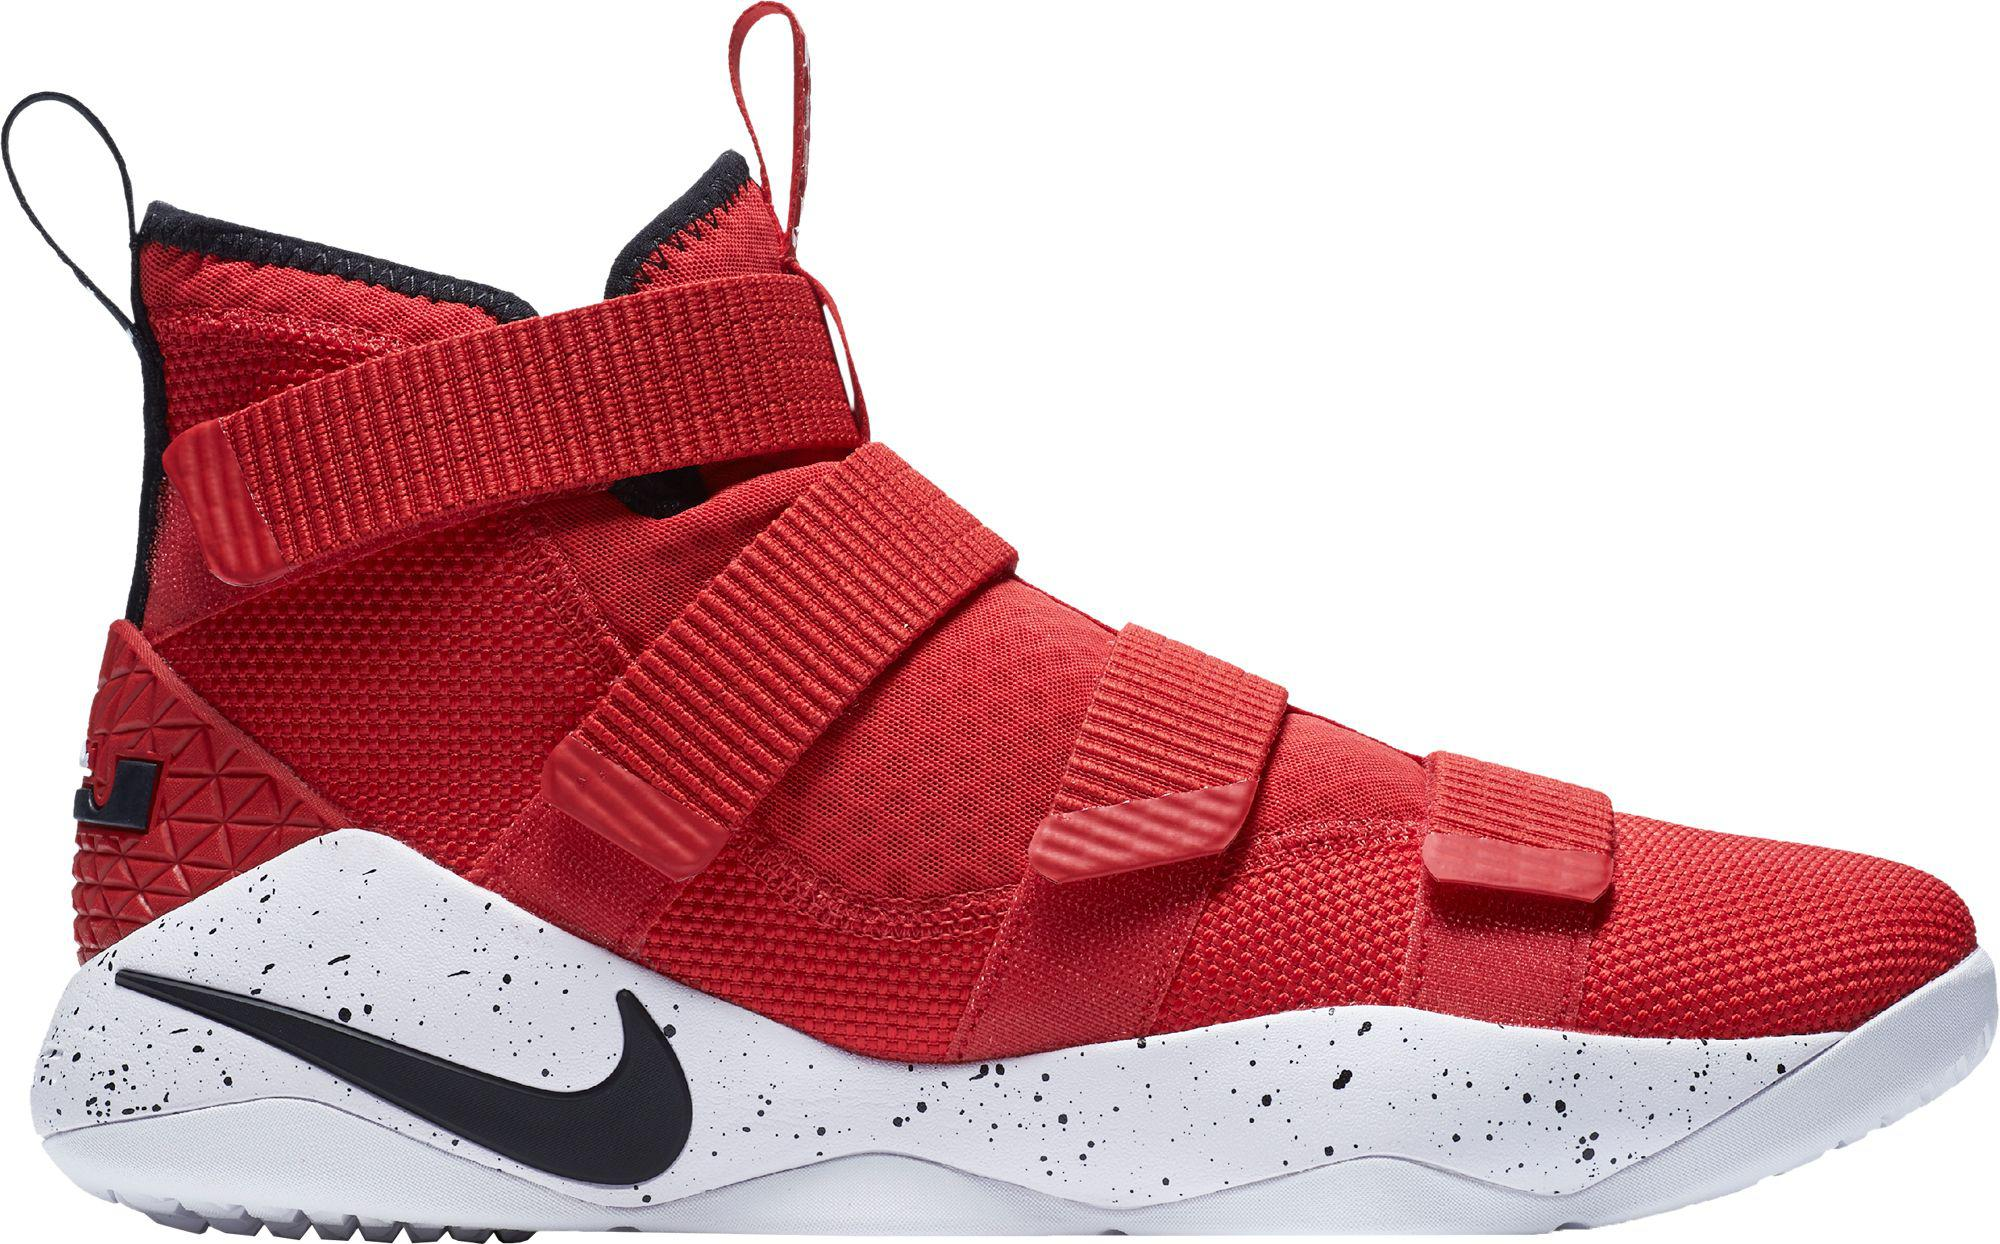 save off 72b44 e8f47 Nike - Red Zoom Lebron Soldier Xi Basketball Shoes for Men - Lyst